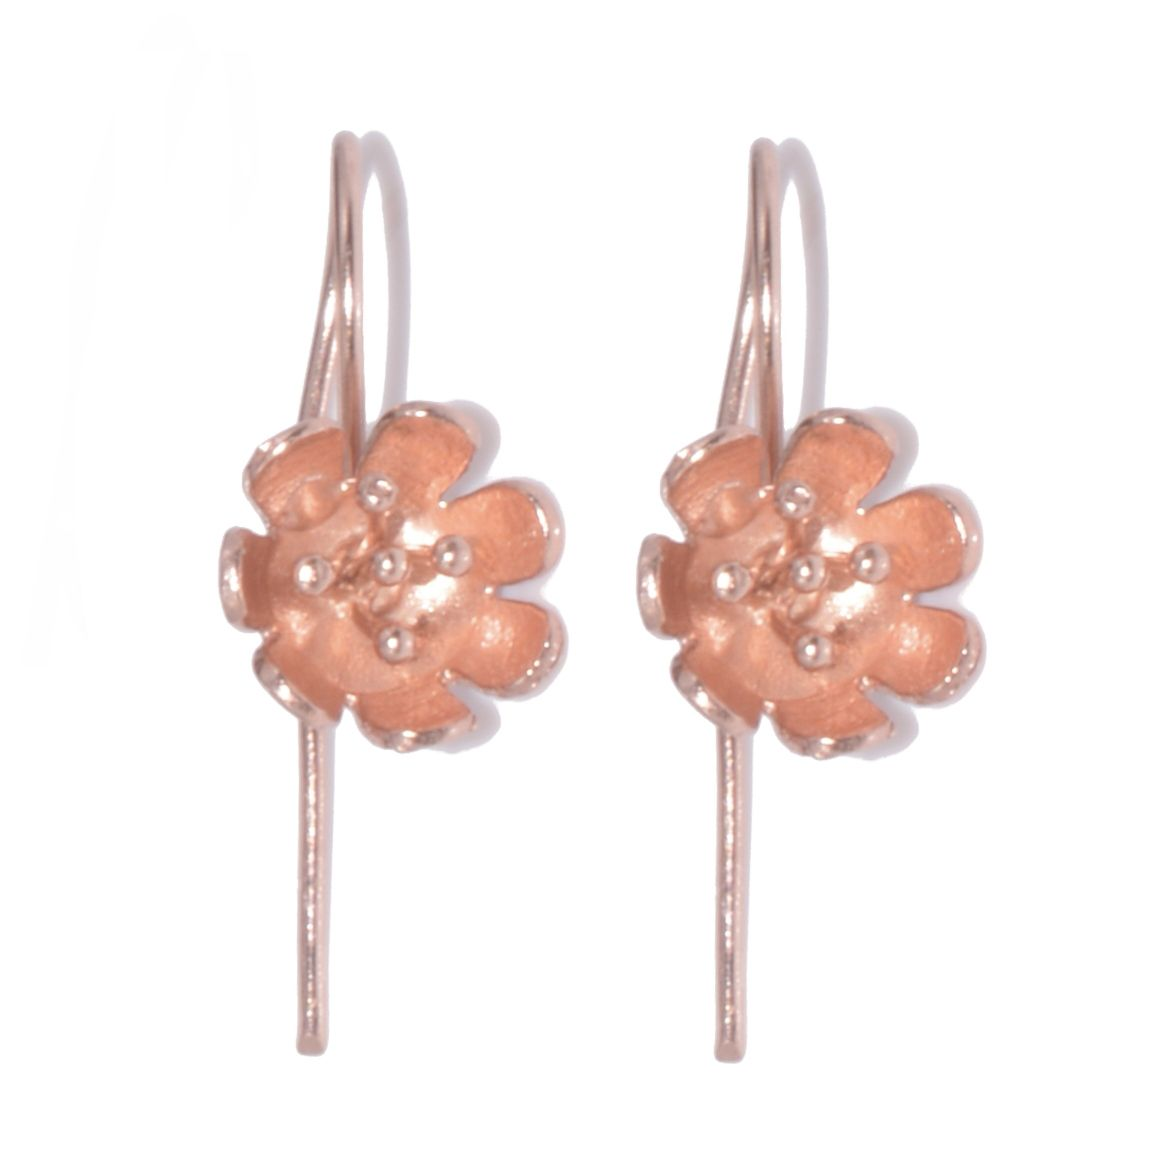 Sterling Silver Jewellery: Long Hooked Poppy Earrings Plated With Rose-Gold  (E329)